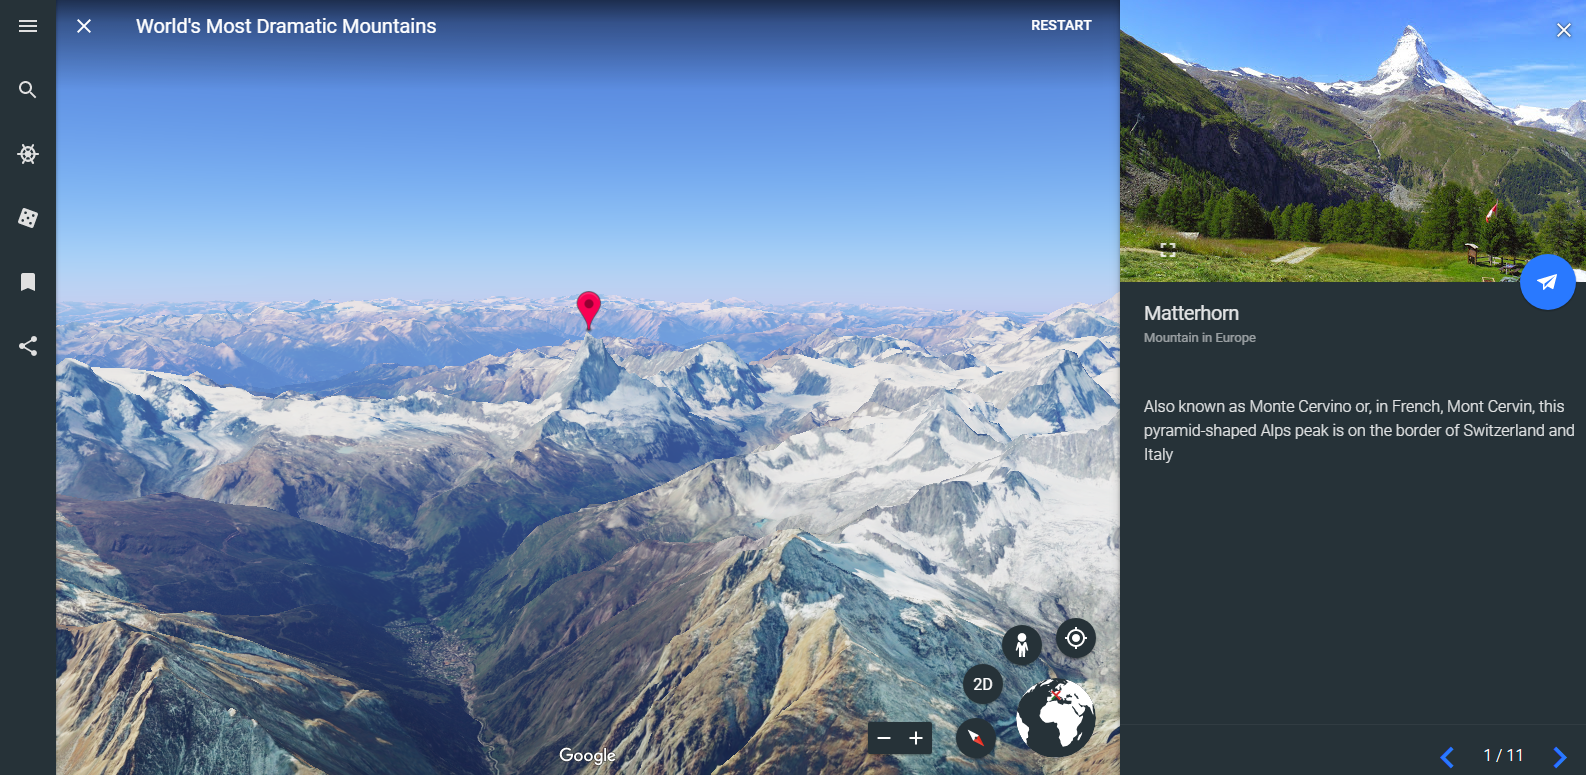 Free Technology for Teachers: A Tour of the New Google Earth